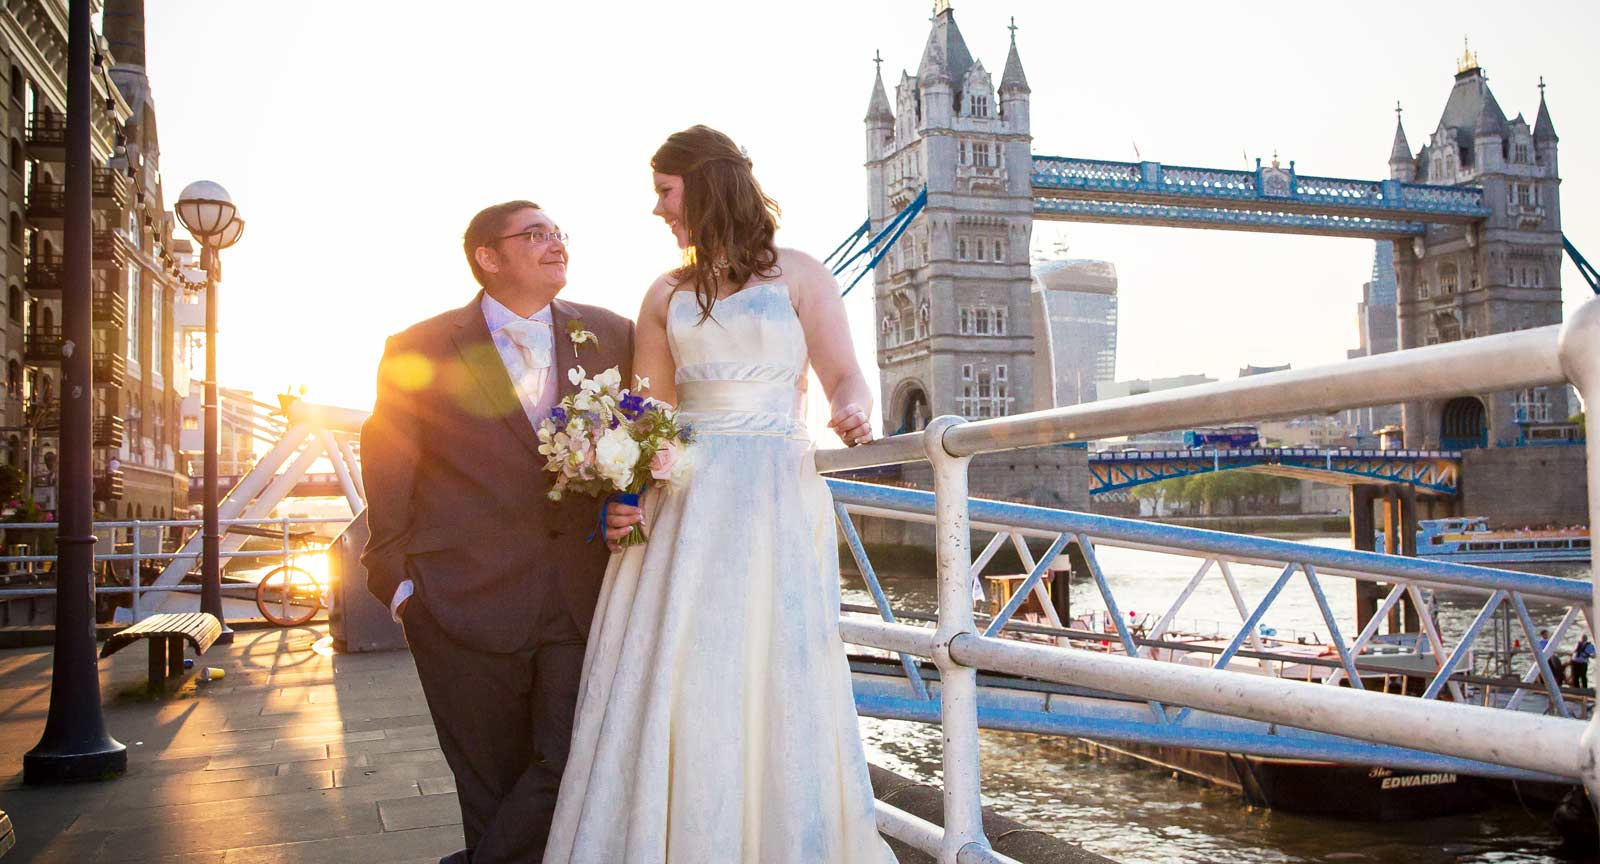 sunset wedding shot at Tower brige